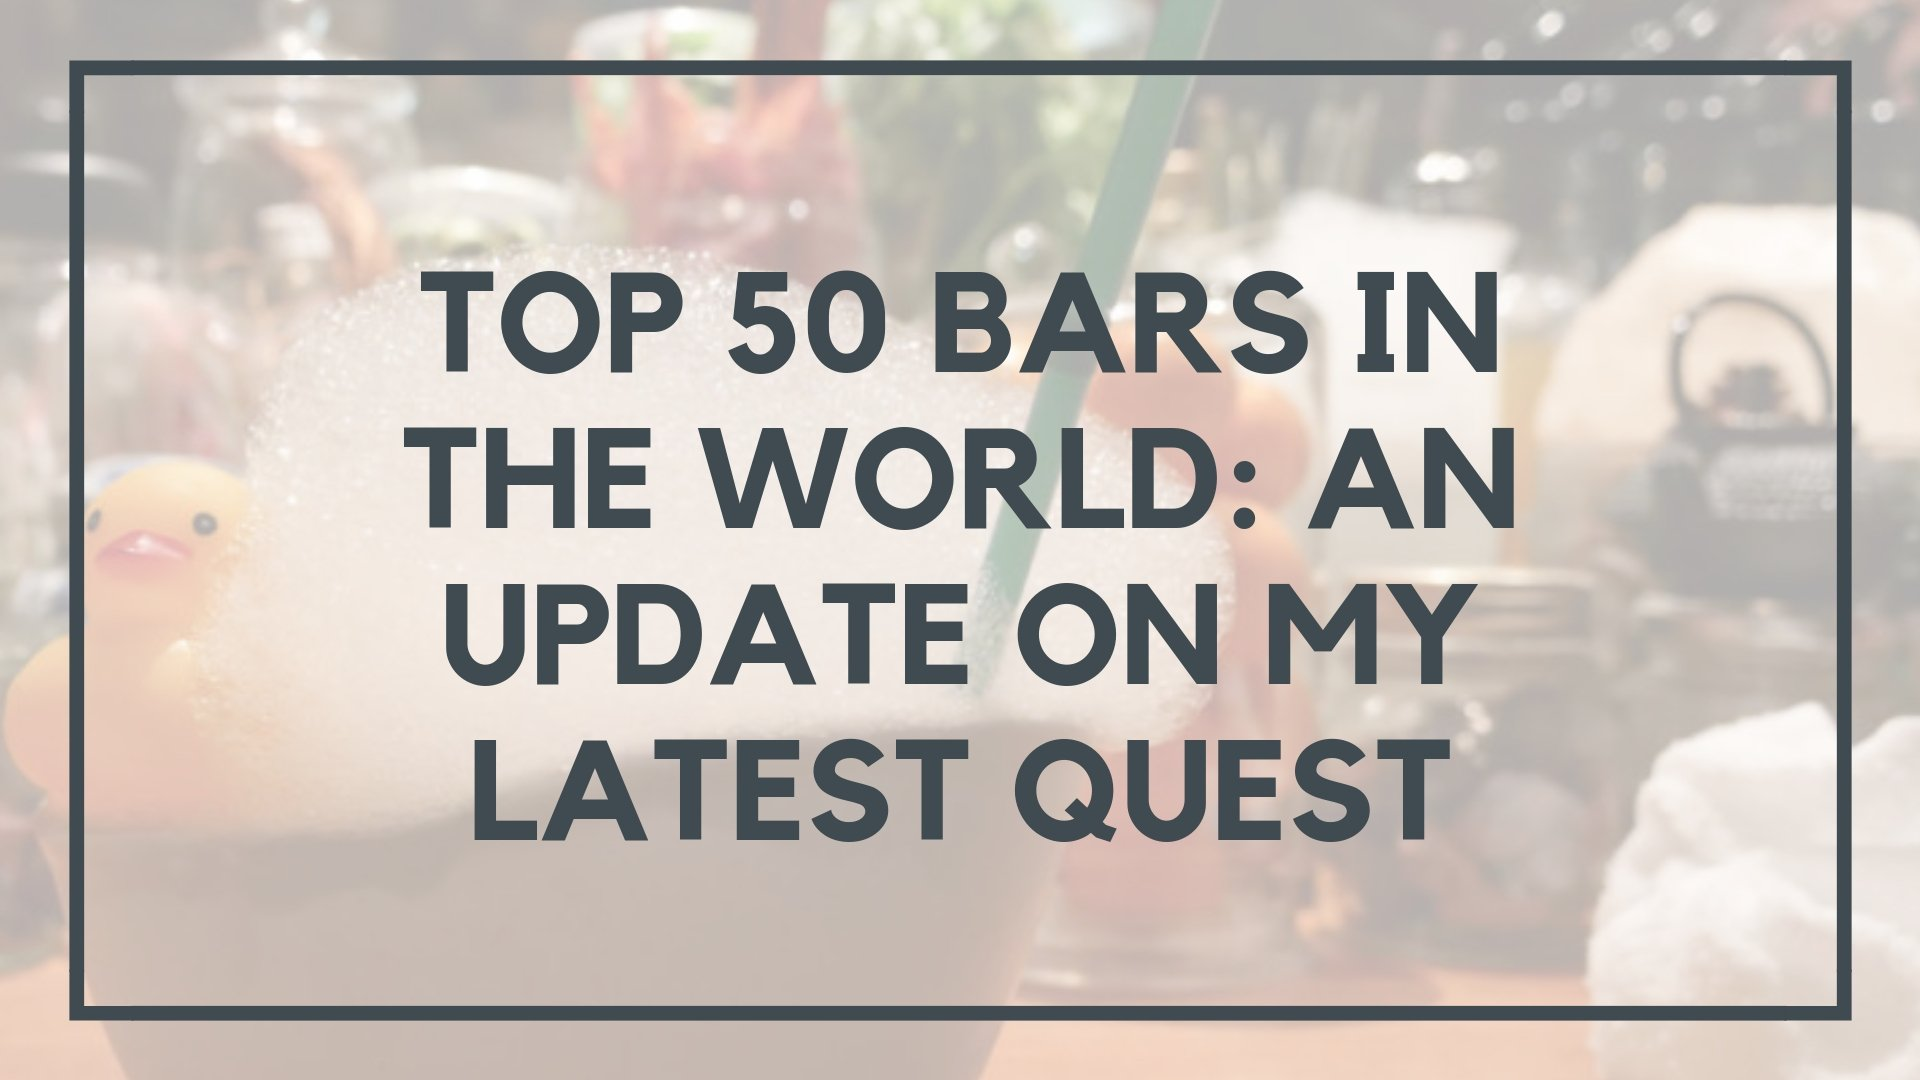 Top 50 Bars in the World: An Update on My Latest Quest